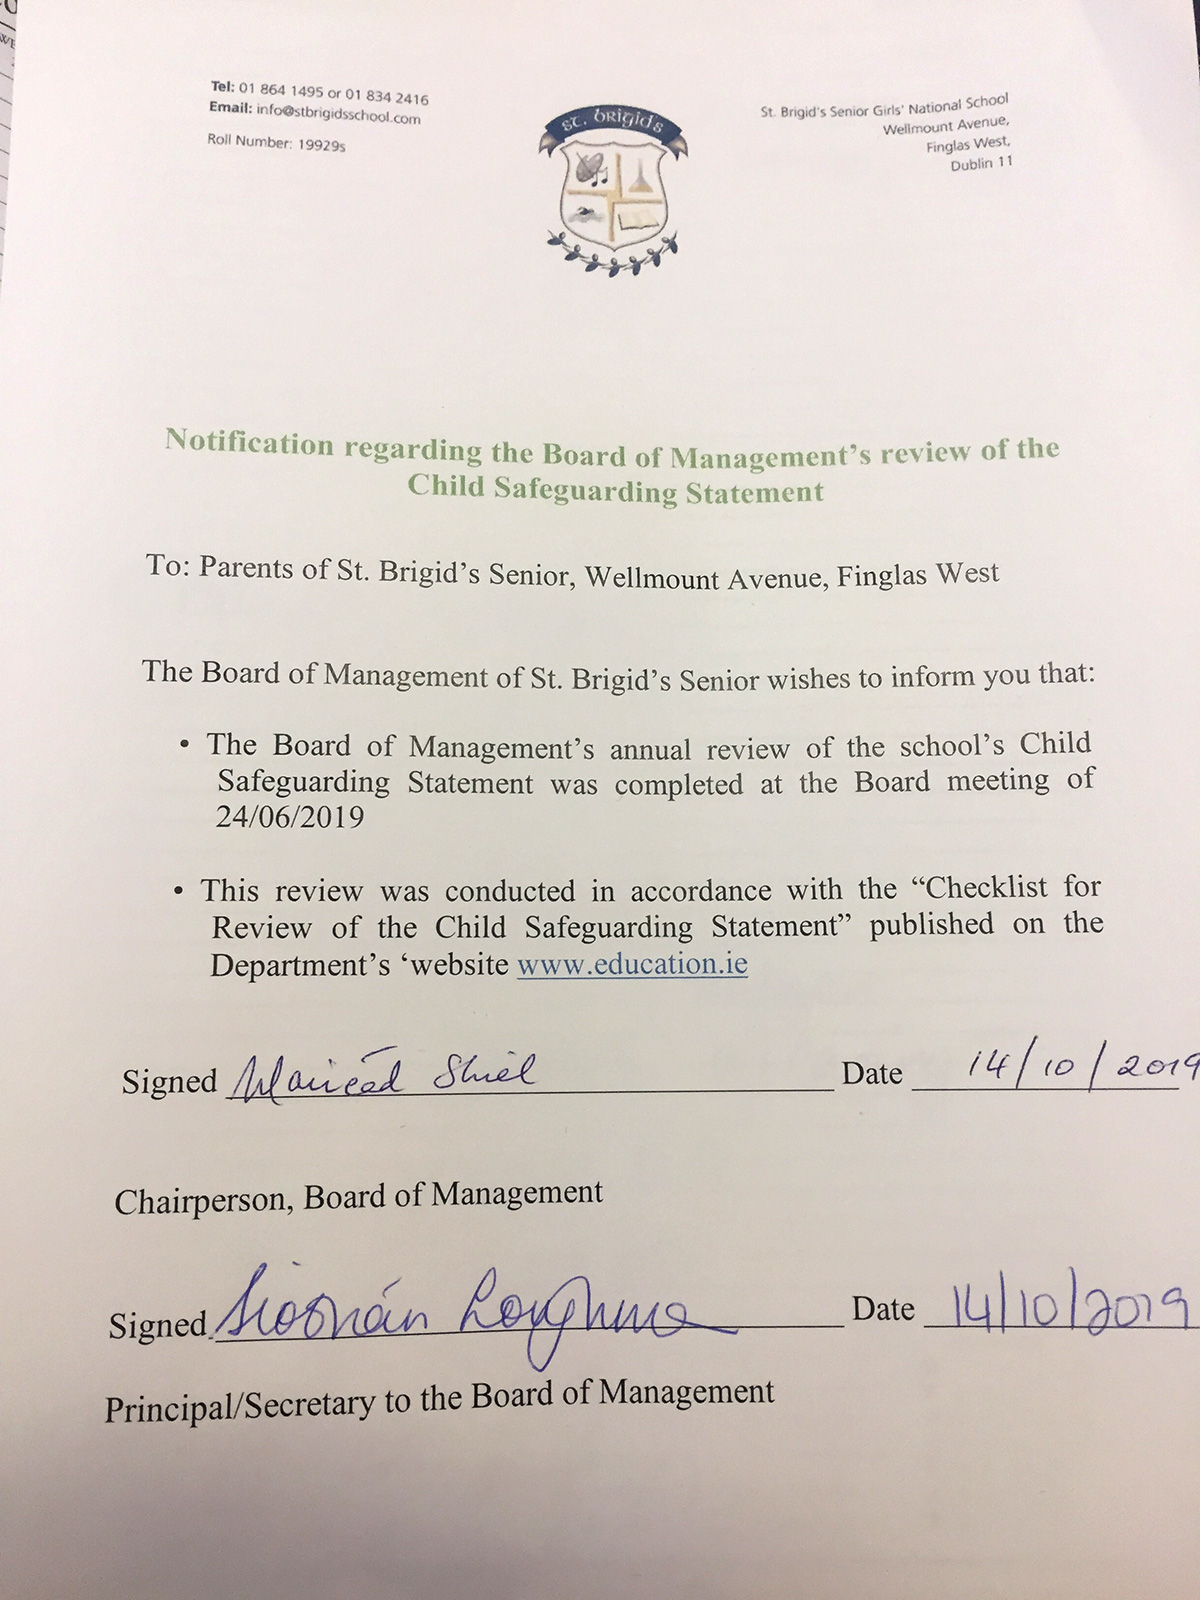 Notification regarding the Board of Management's Review of the Child Safeguarding Statement